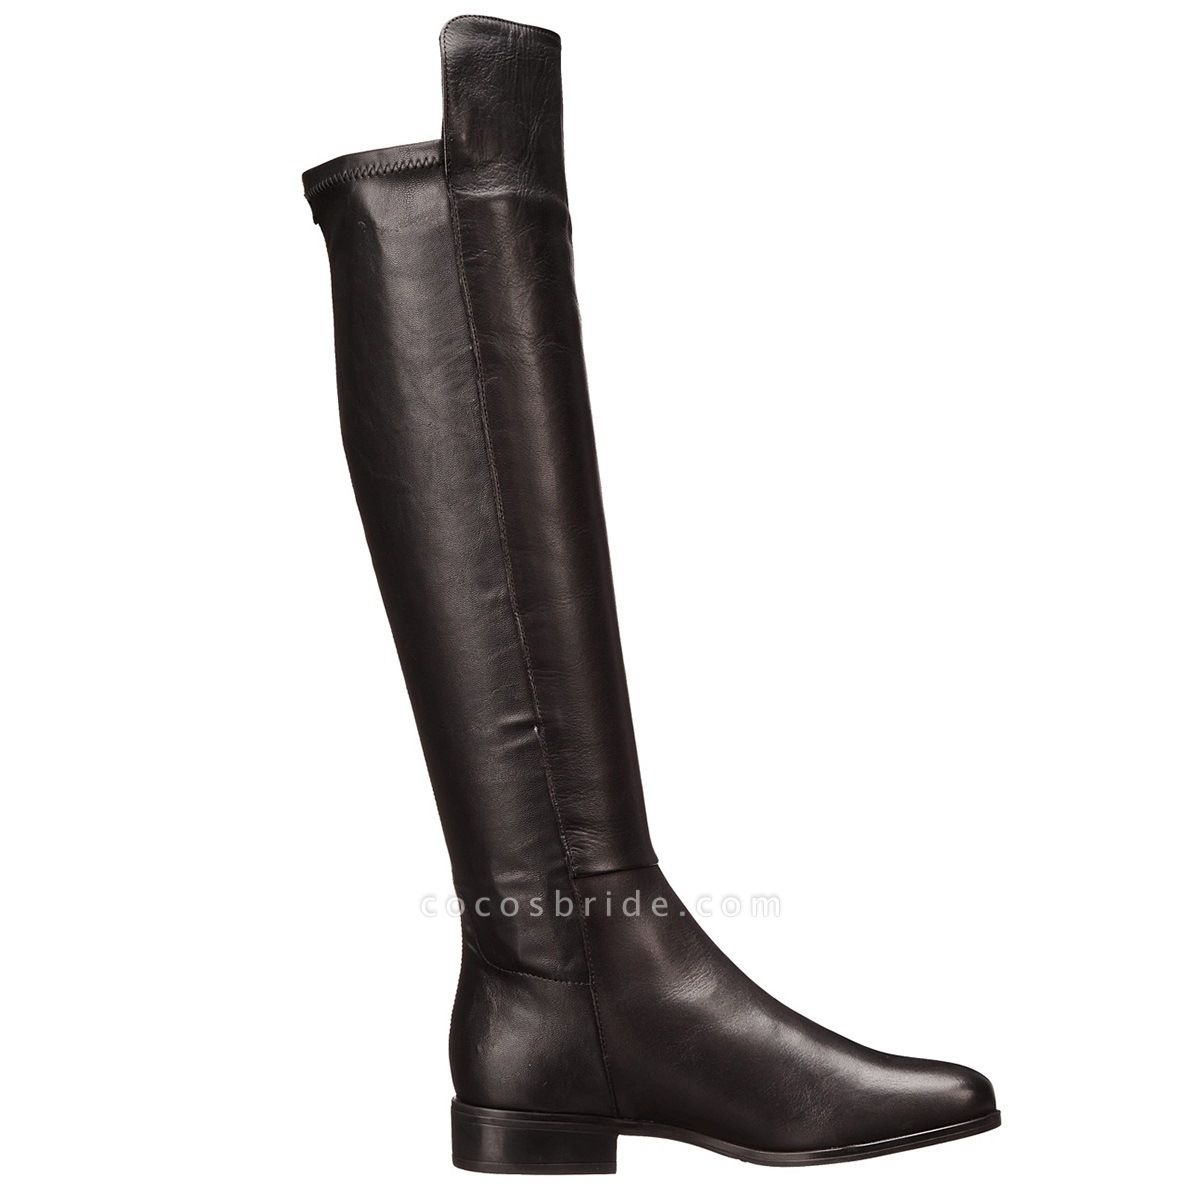 SD1503 Boots